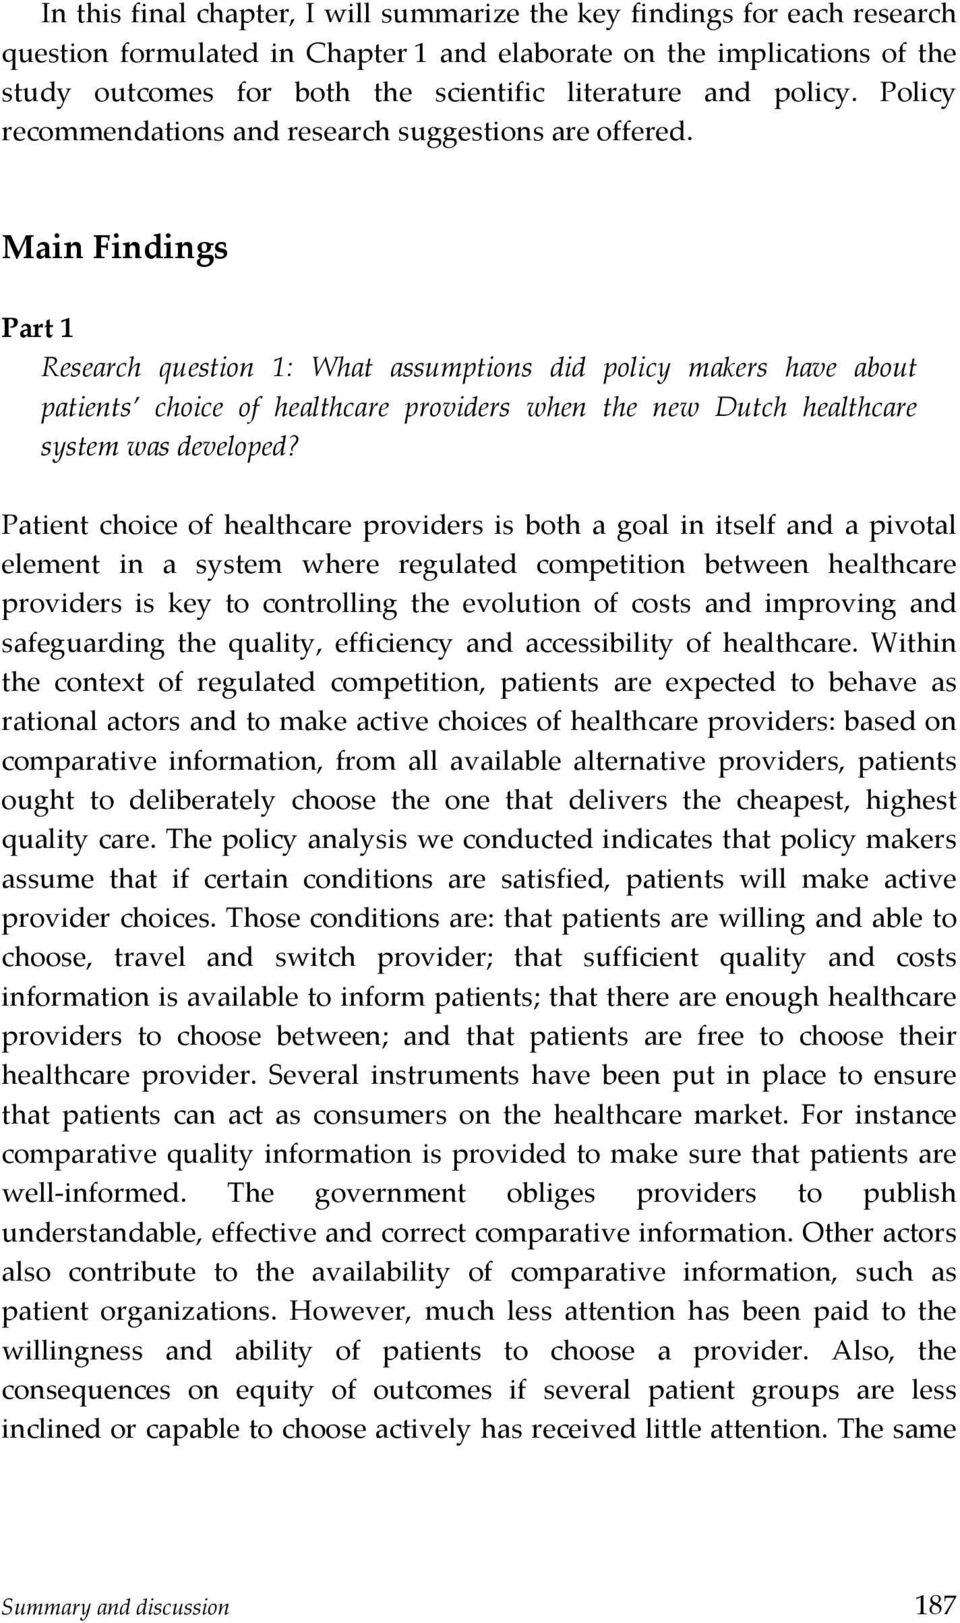 "Main""Findings"" ' Part""1"" Research' question' 1:' What' assumptions' did' policy' makers' have' about' patients ' choice' of' healthcare' providers' when' the' new' Dutch' healthcare'"